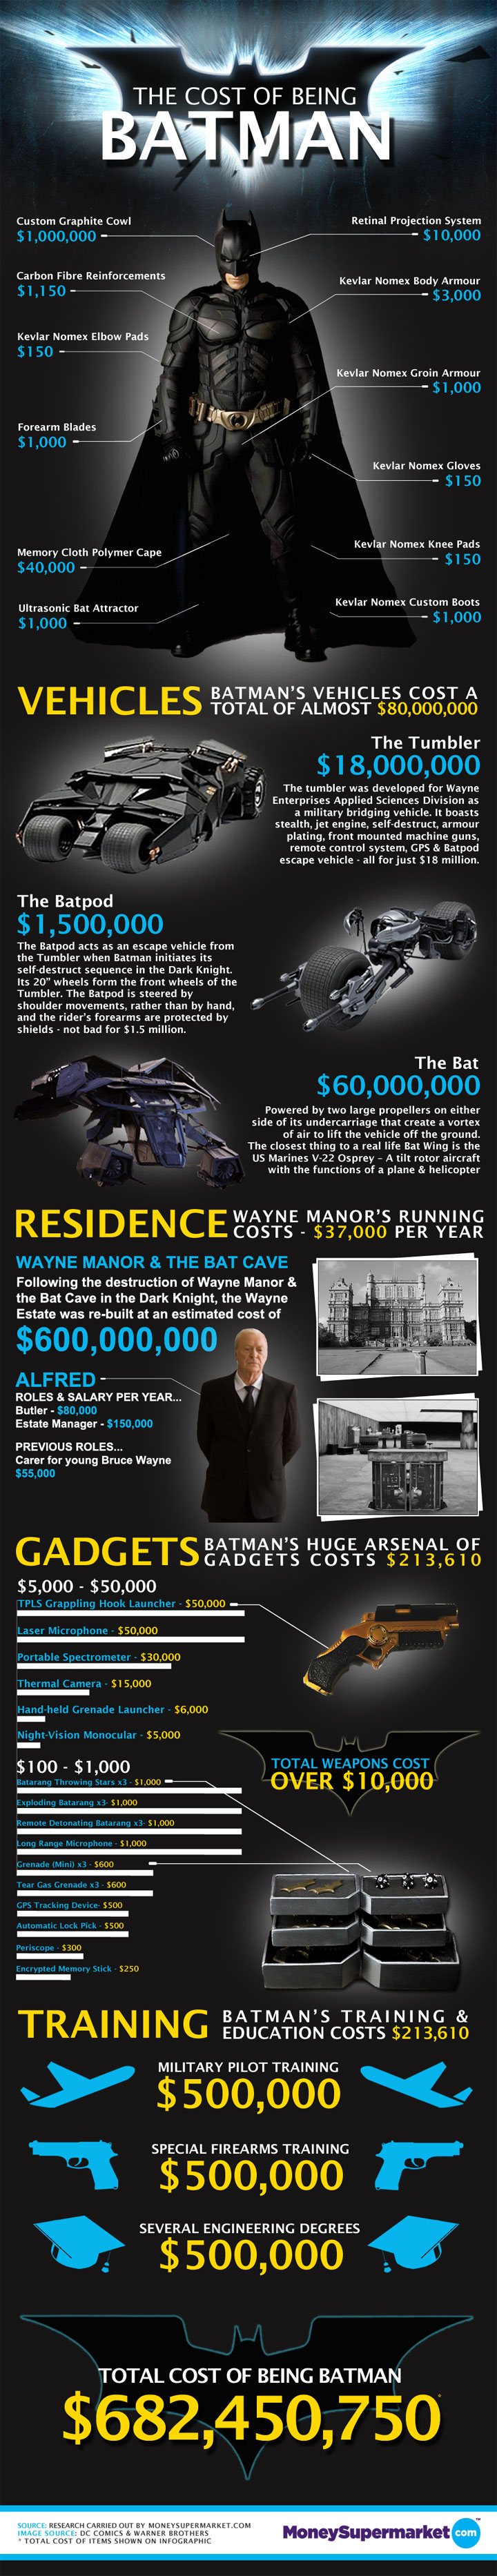 The-Cost-of-Being-Batman